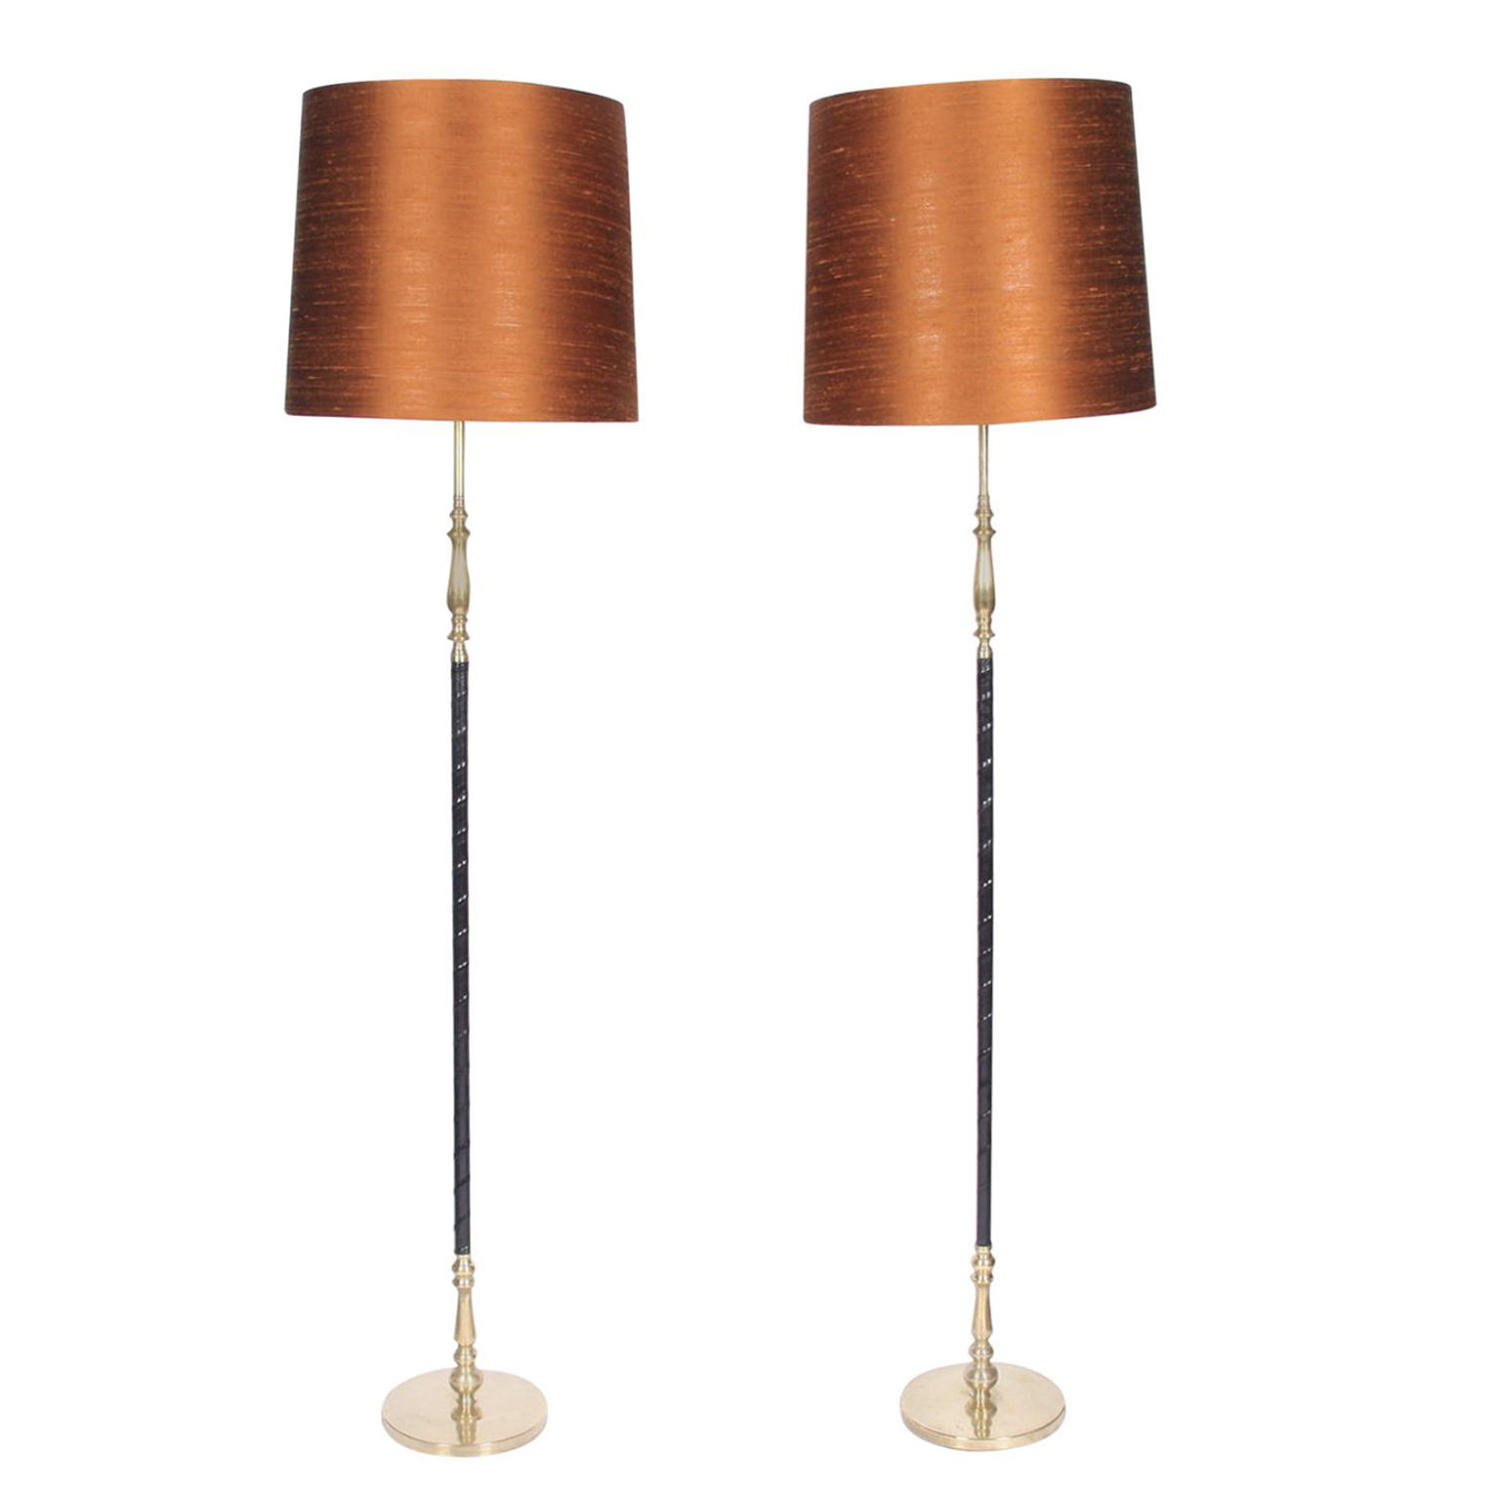 Pair of Leather and Brass Floor Lamps